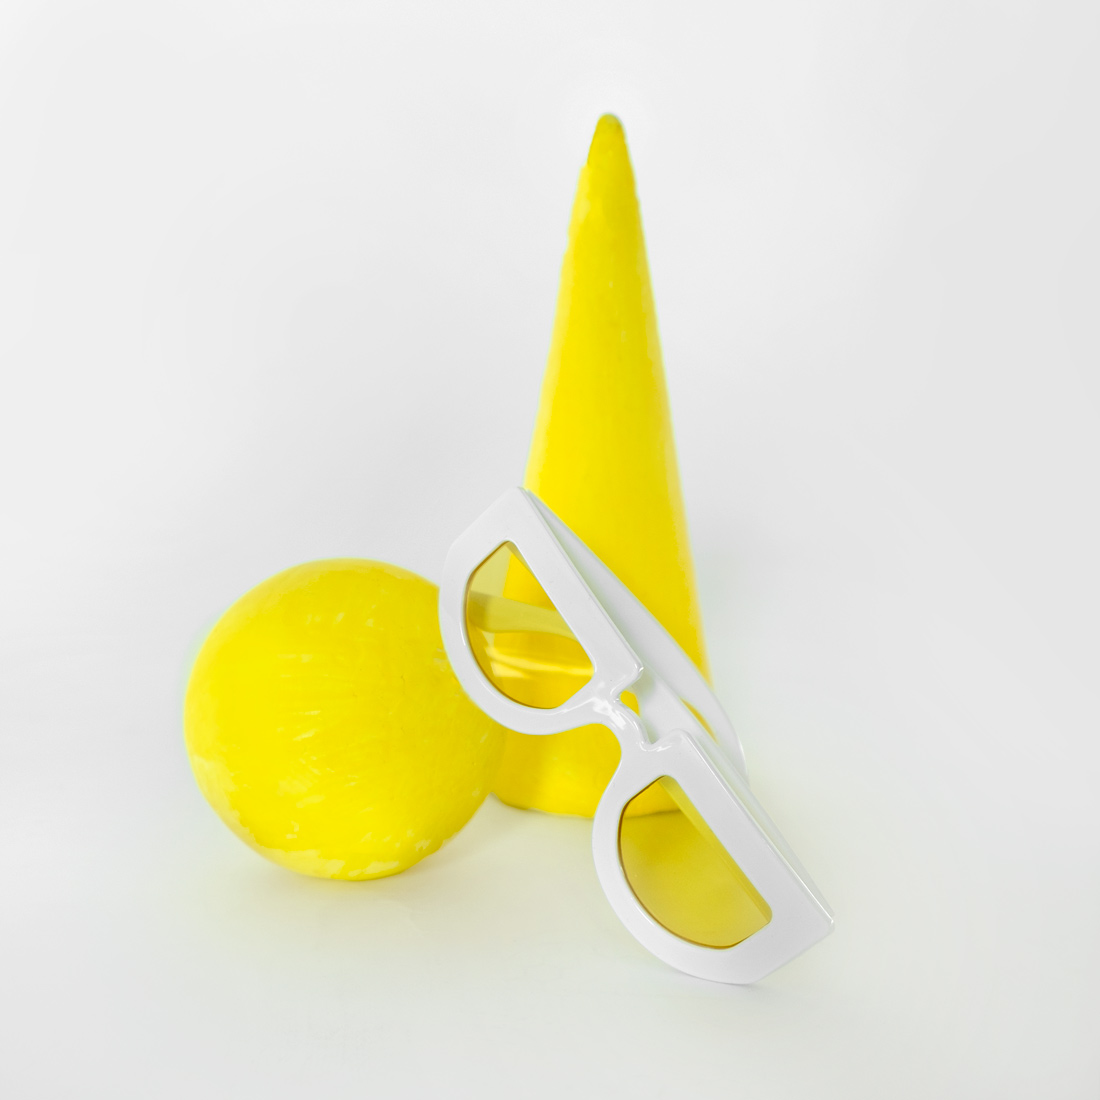 LCDglasses_yellow3